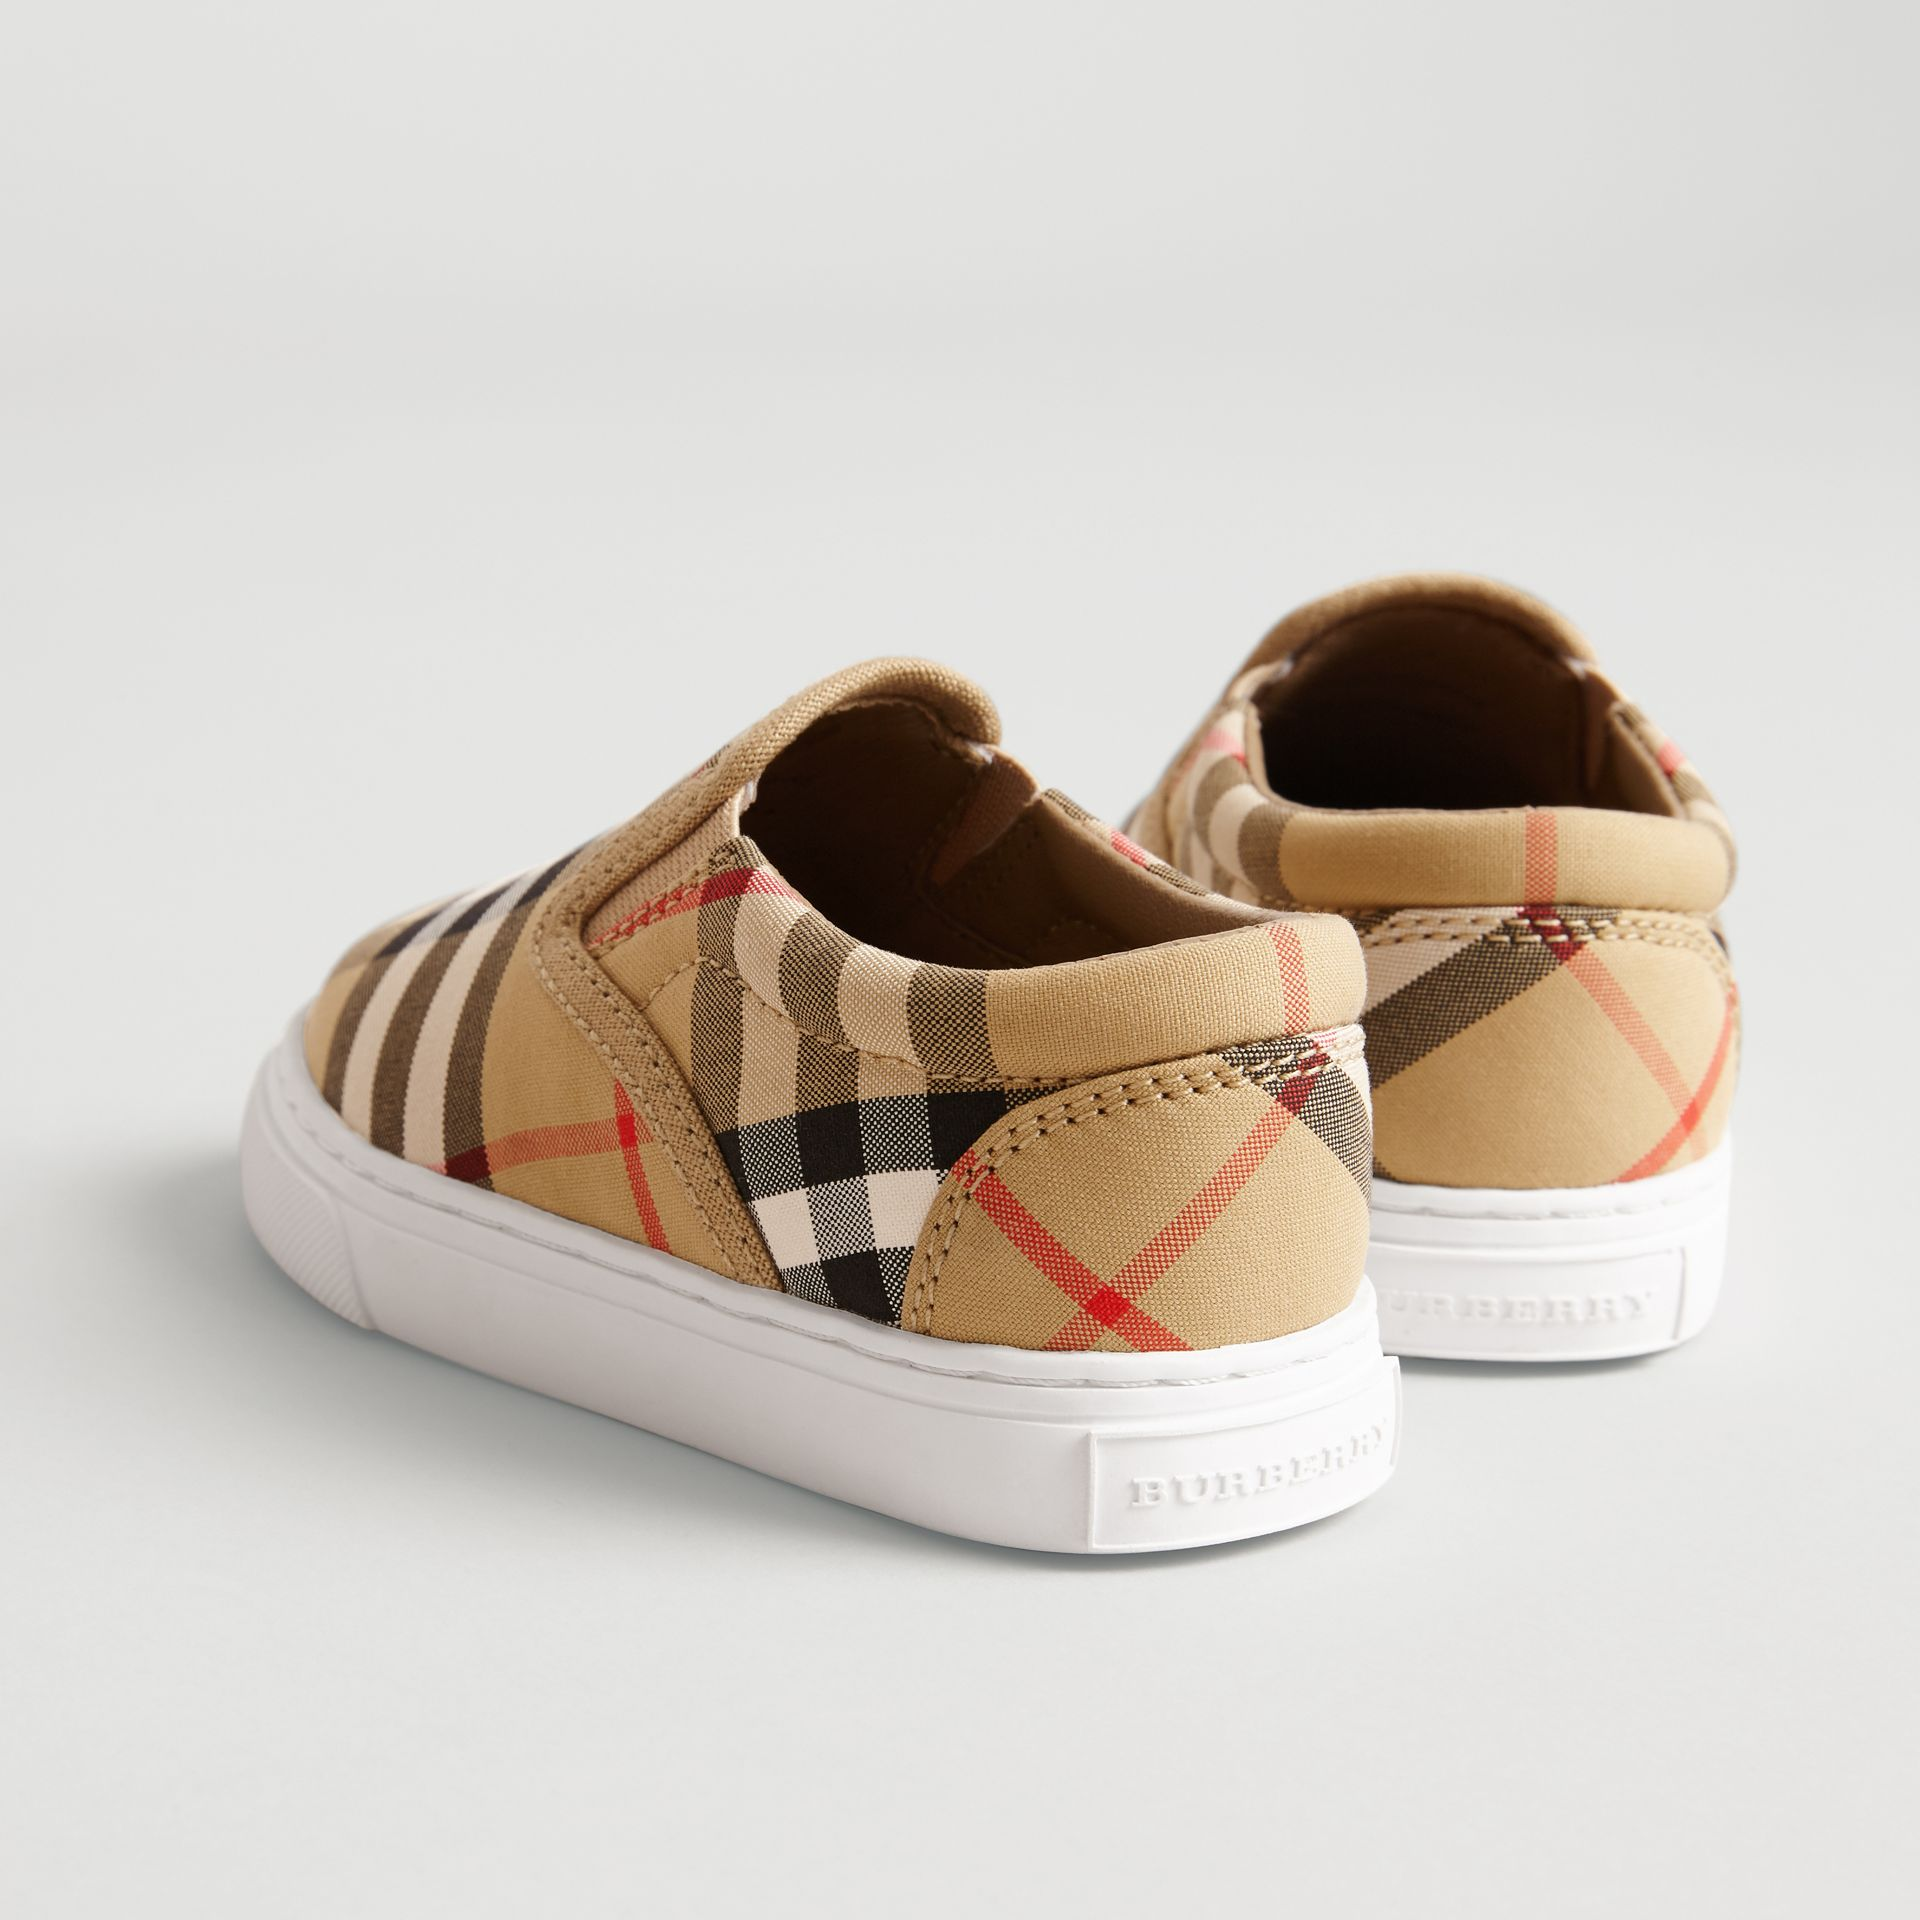 Sneakers sans lacets en cuir à motif Vintage check (Jaune Antique/blanc Optique) - Enfant | Burberry Canada - photo de la galerie 2